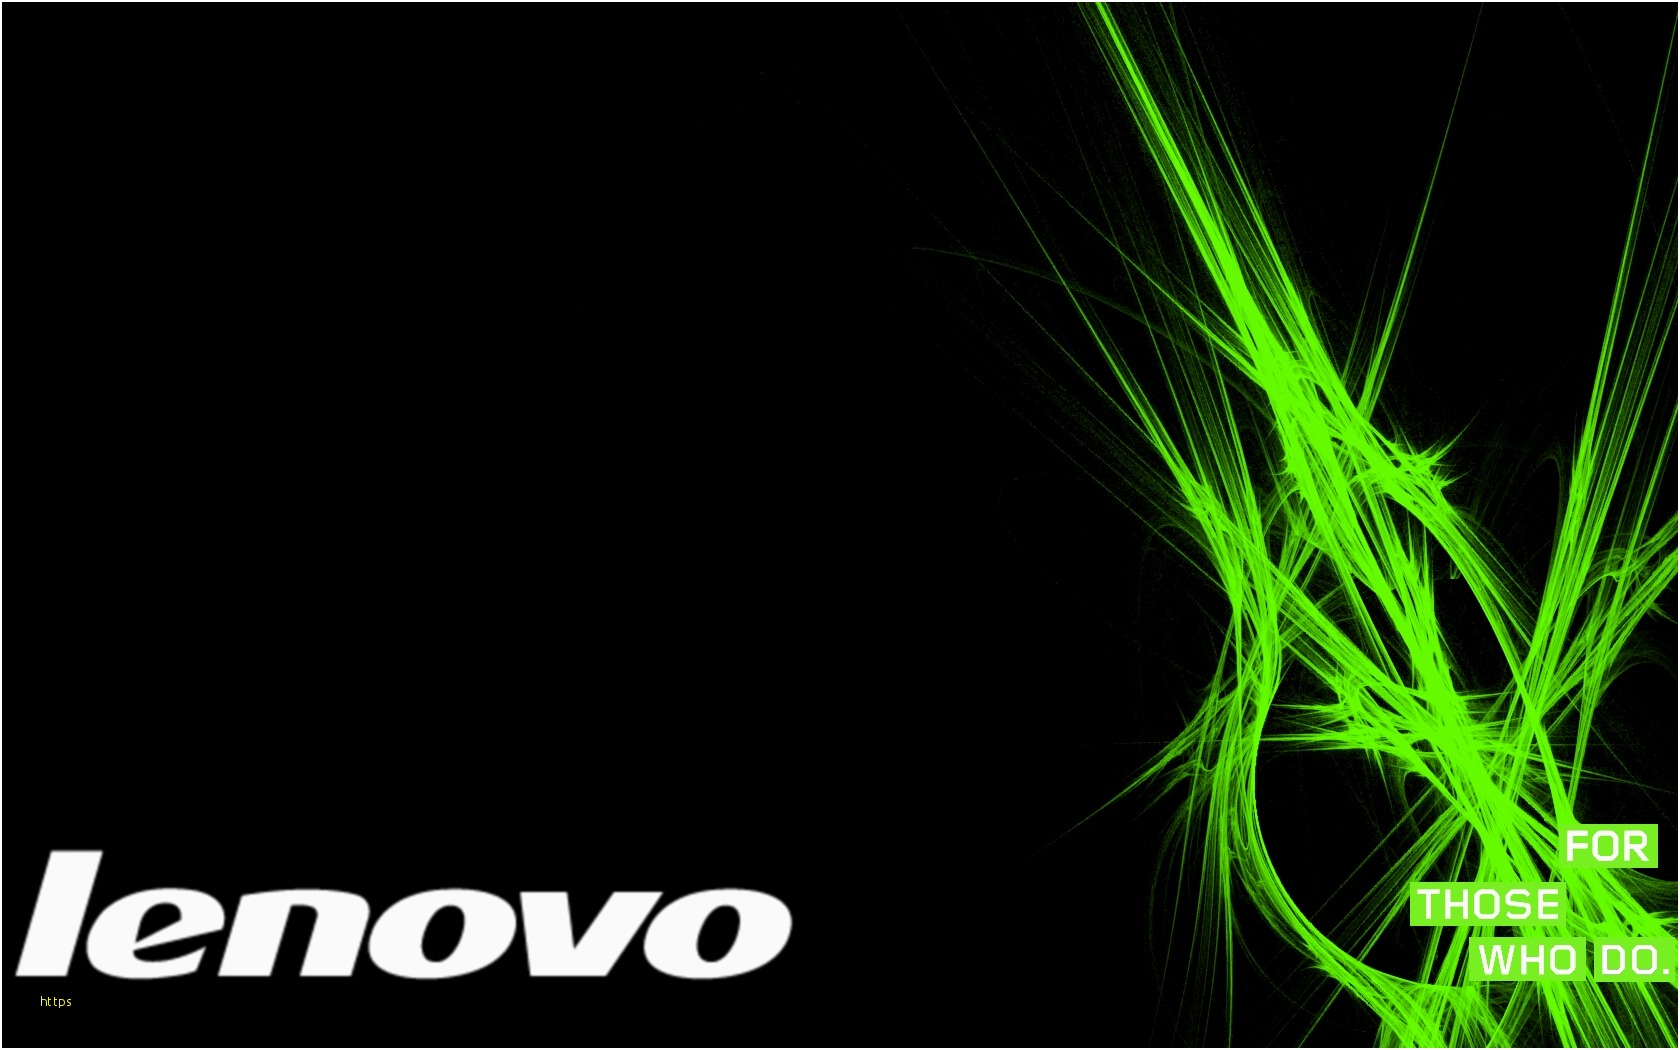 Lenovo Wallpaper Posted By Ryan Tremblay